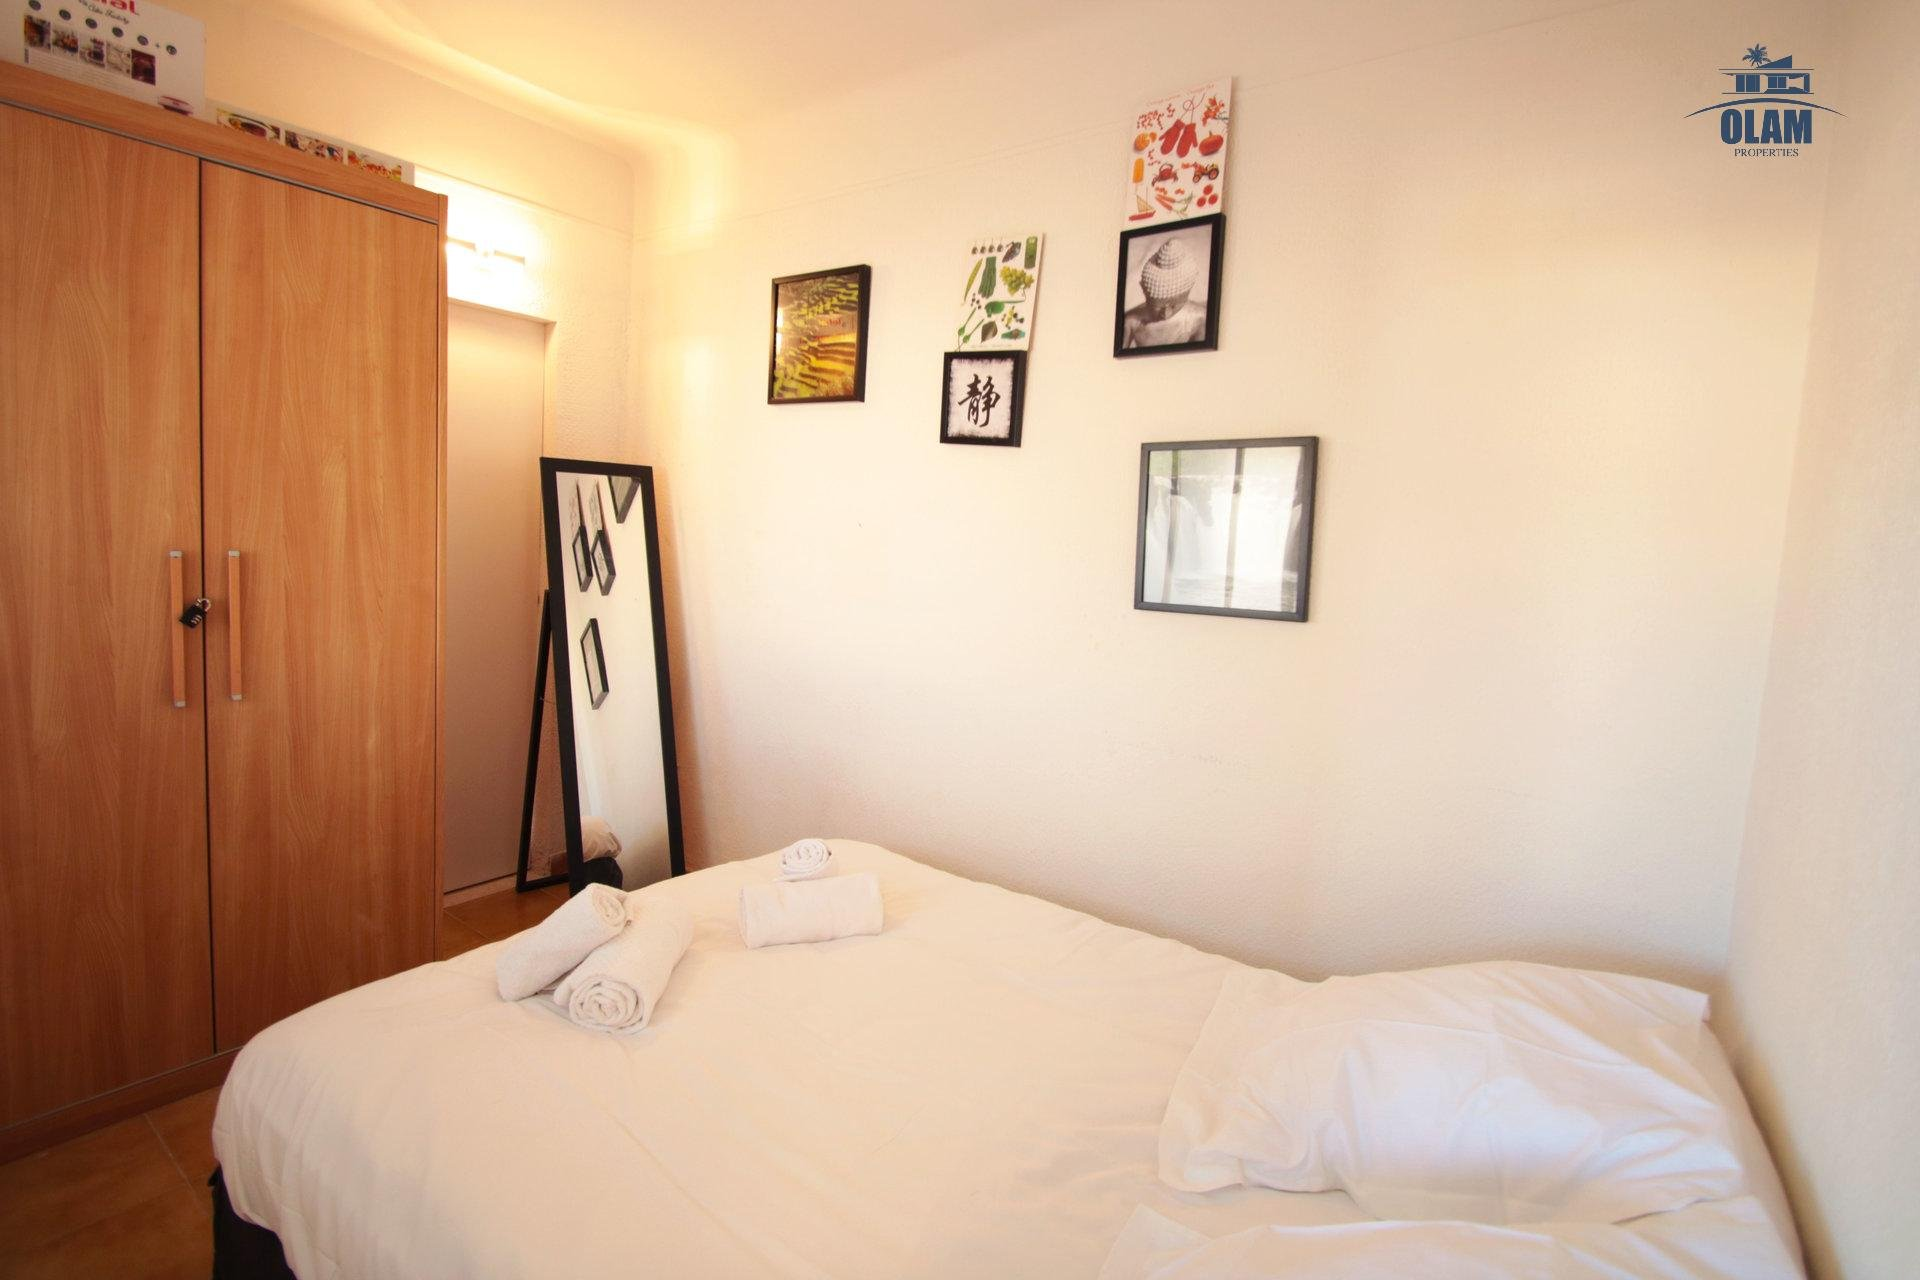 Bedroom, queensize bed, Cannes, French Riviera